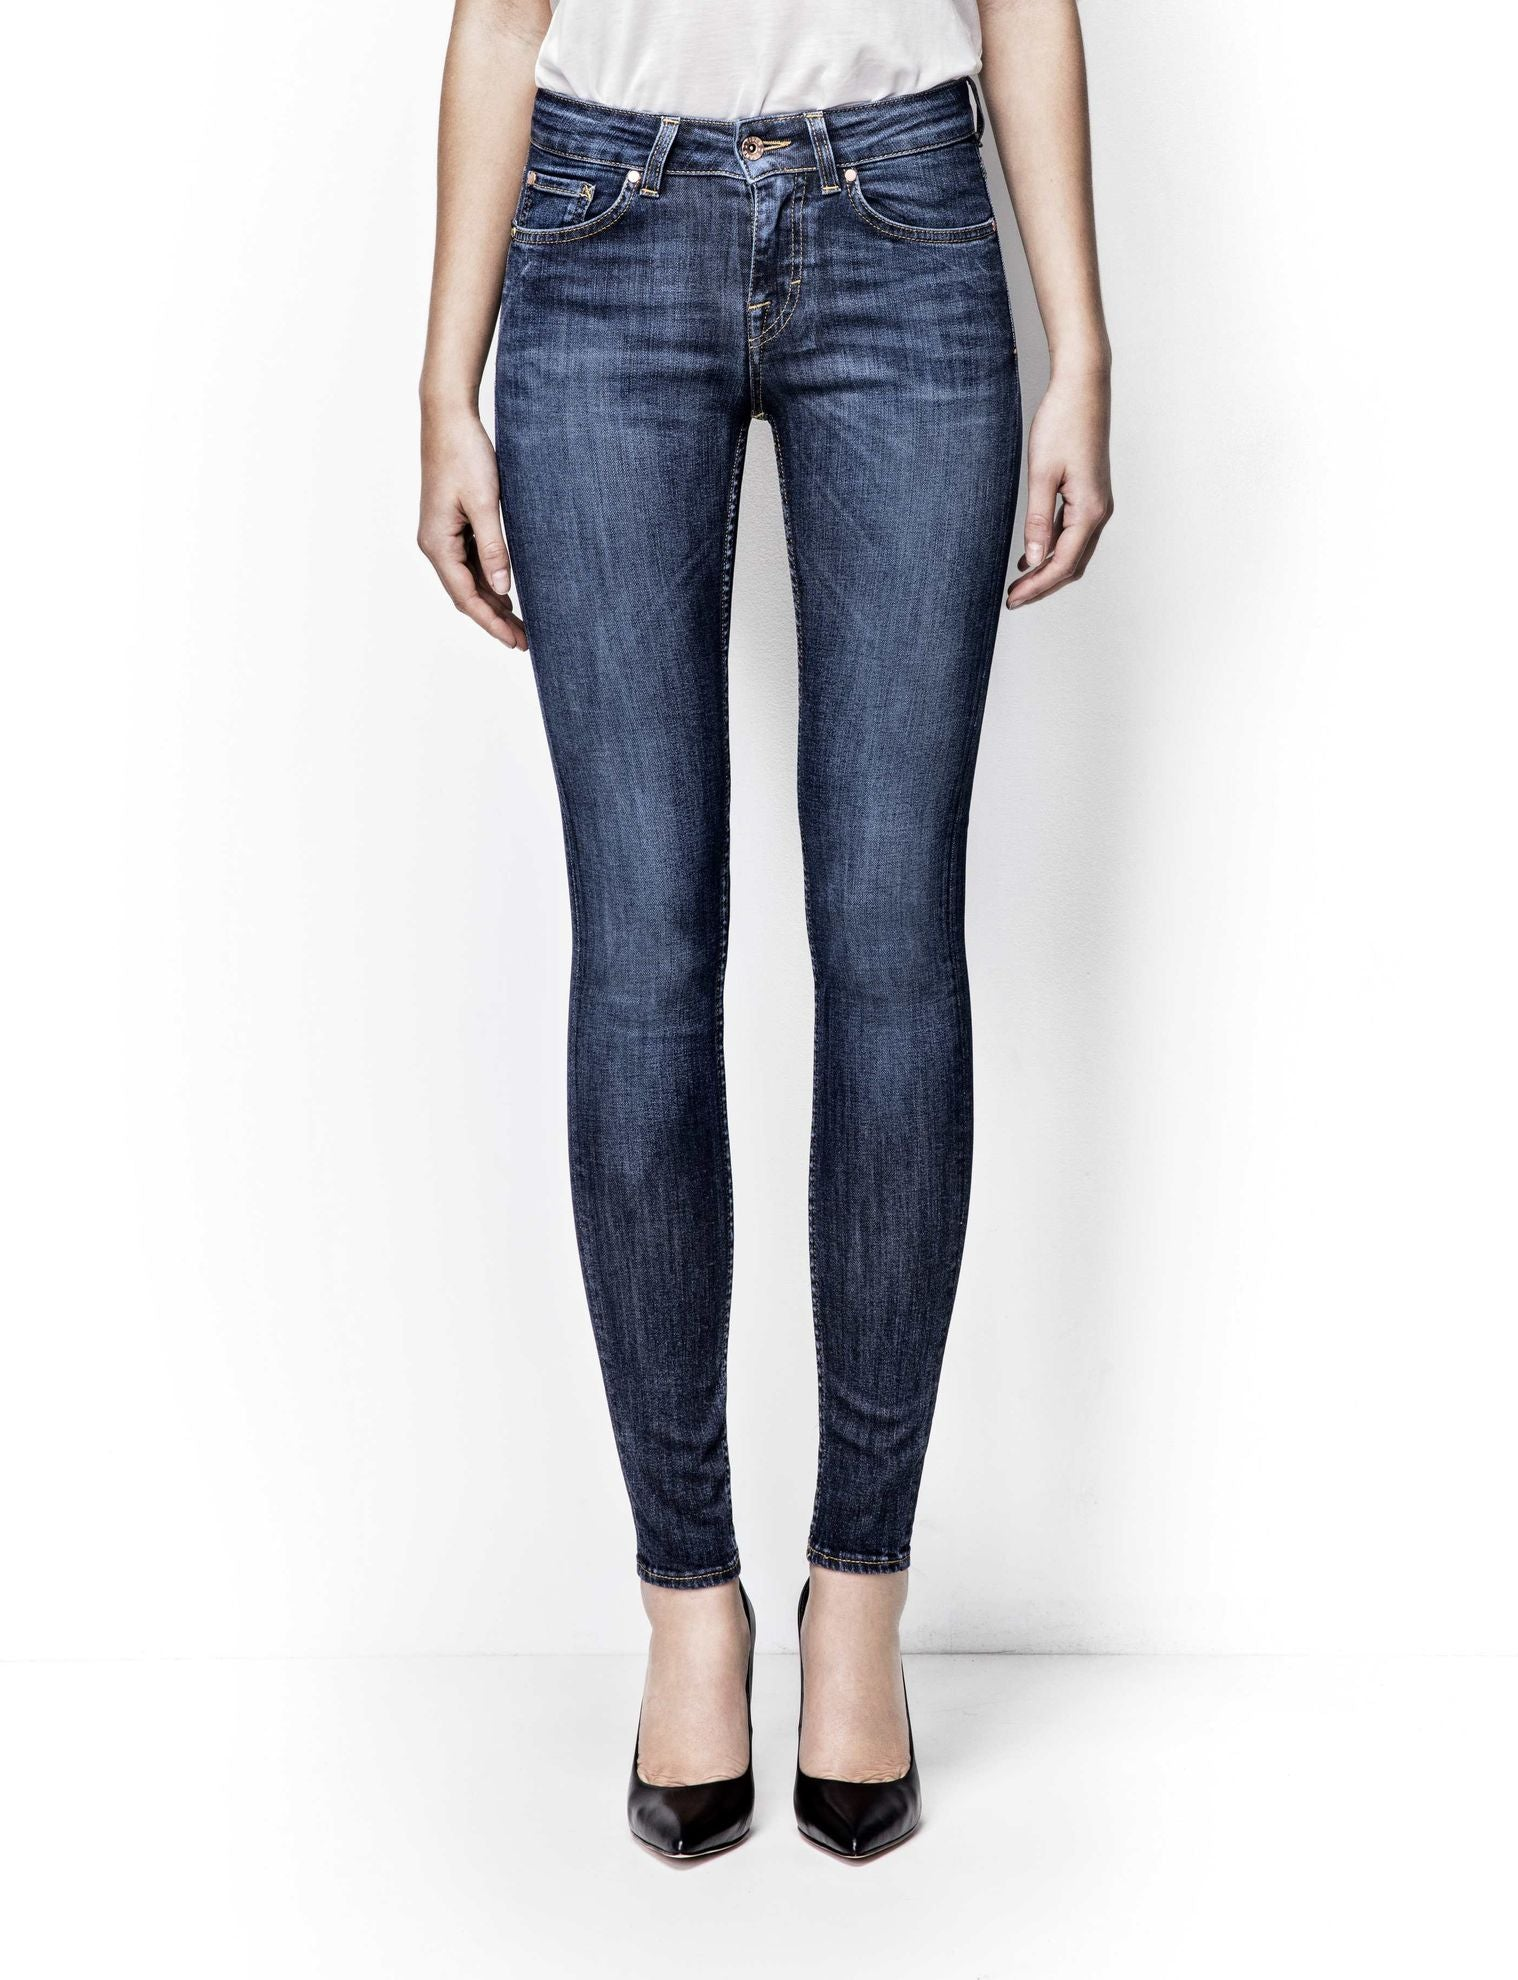 Tiger of Sweden Jeans Slight Aura - Mojo Independent Store